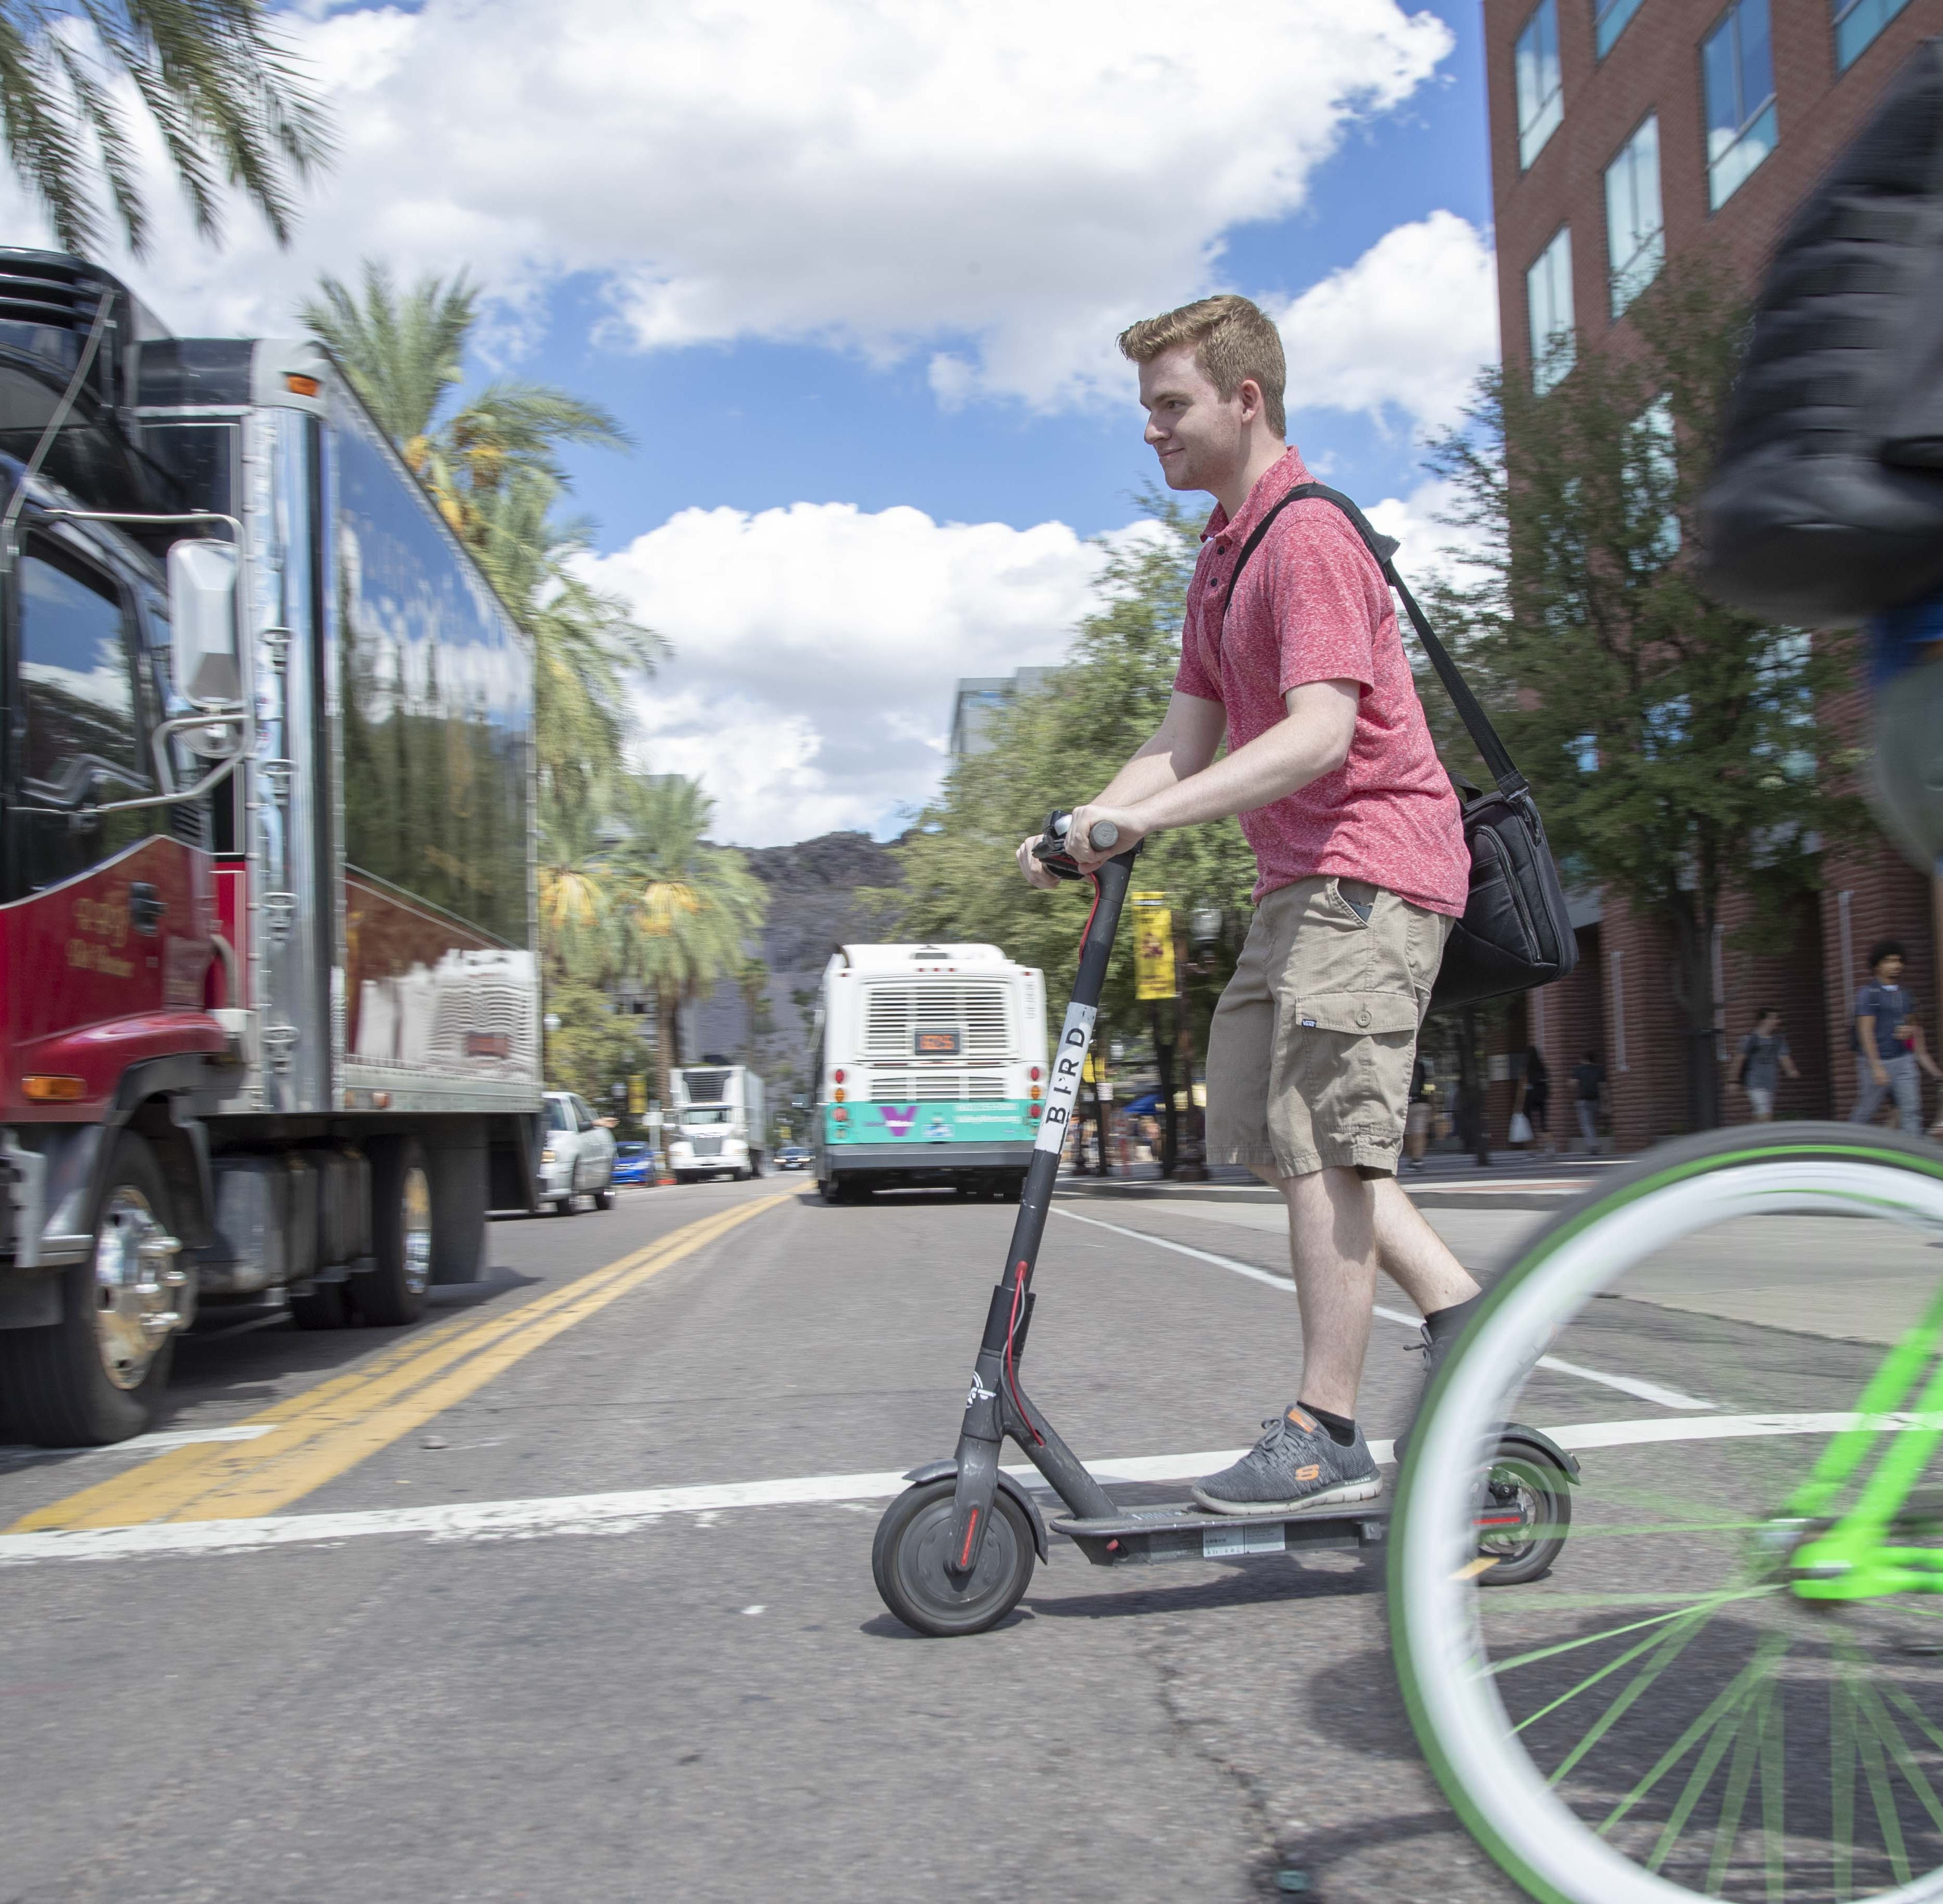 ASU to electric scooter companies: Get off the Tempe campus